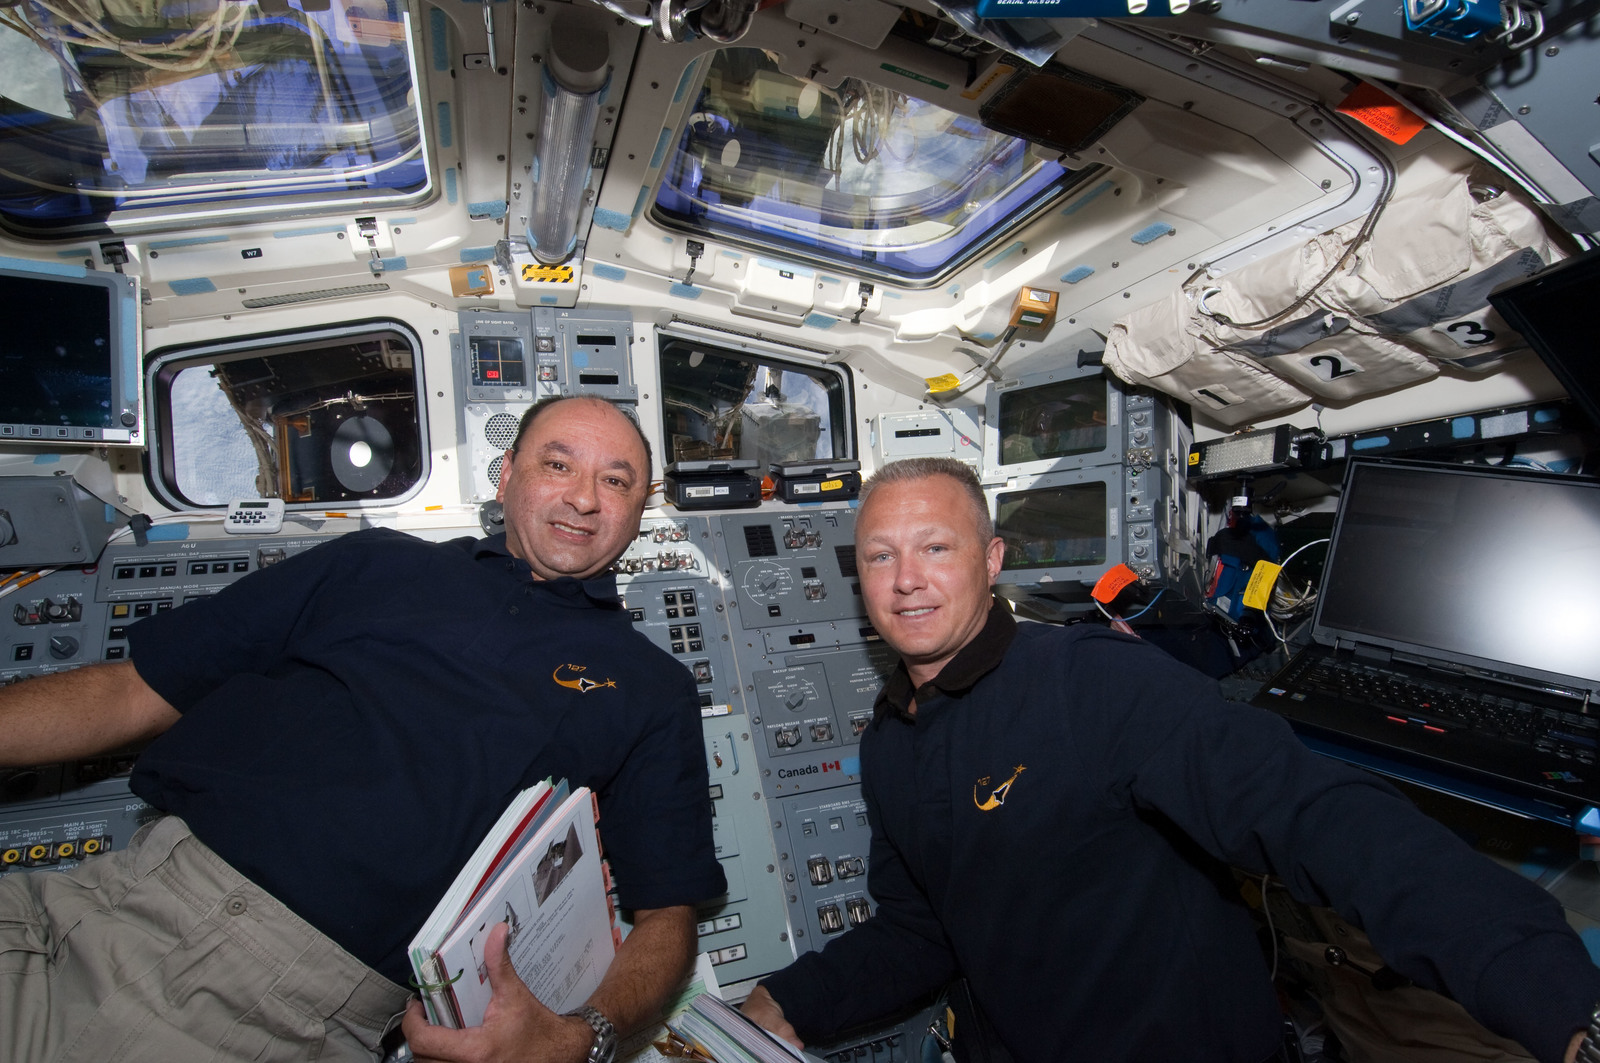 S127E006923 - STS-127 - Polansky and Hurley in the aft FD during STS-127 / Expedition 20 Joint Operations